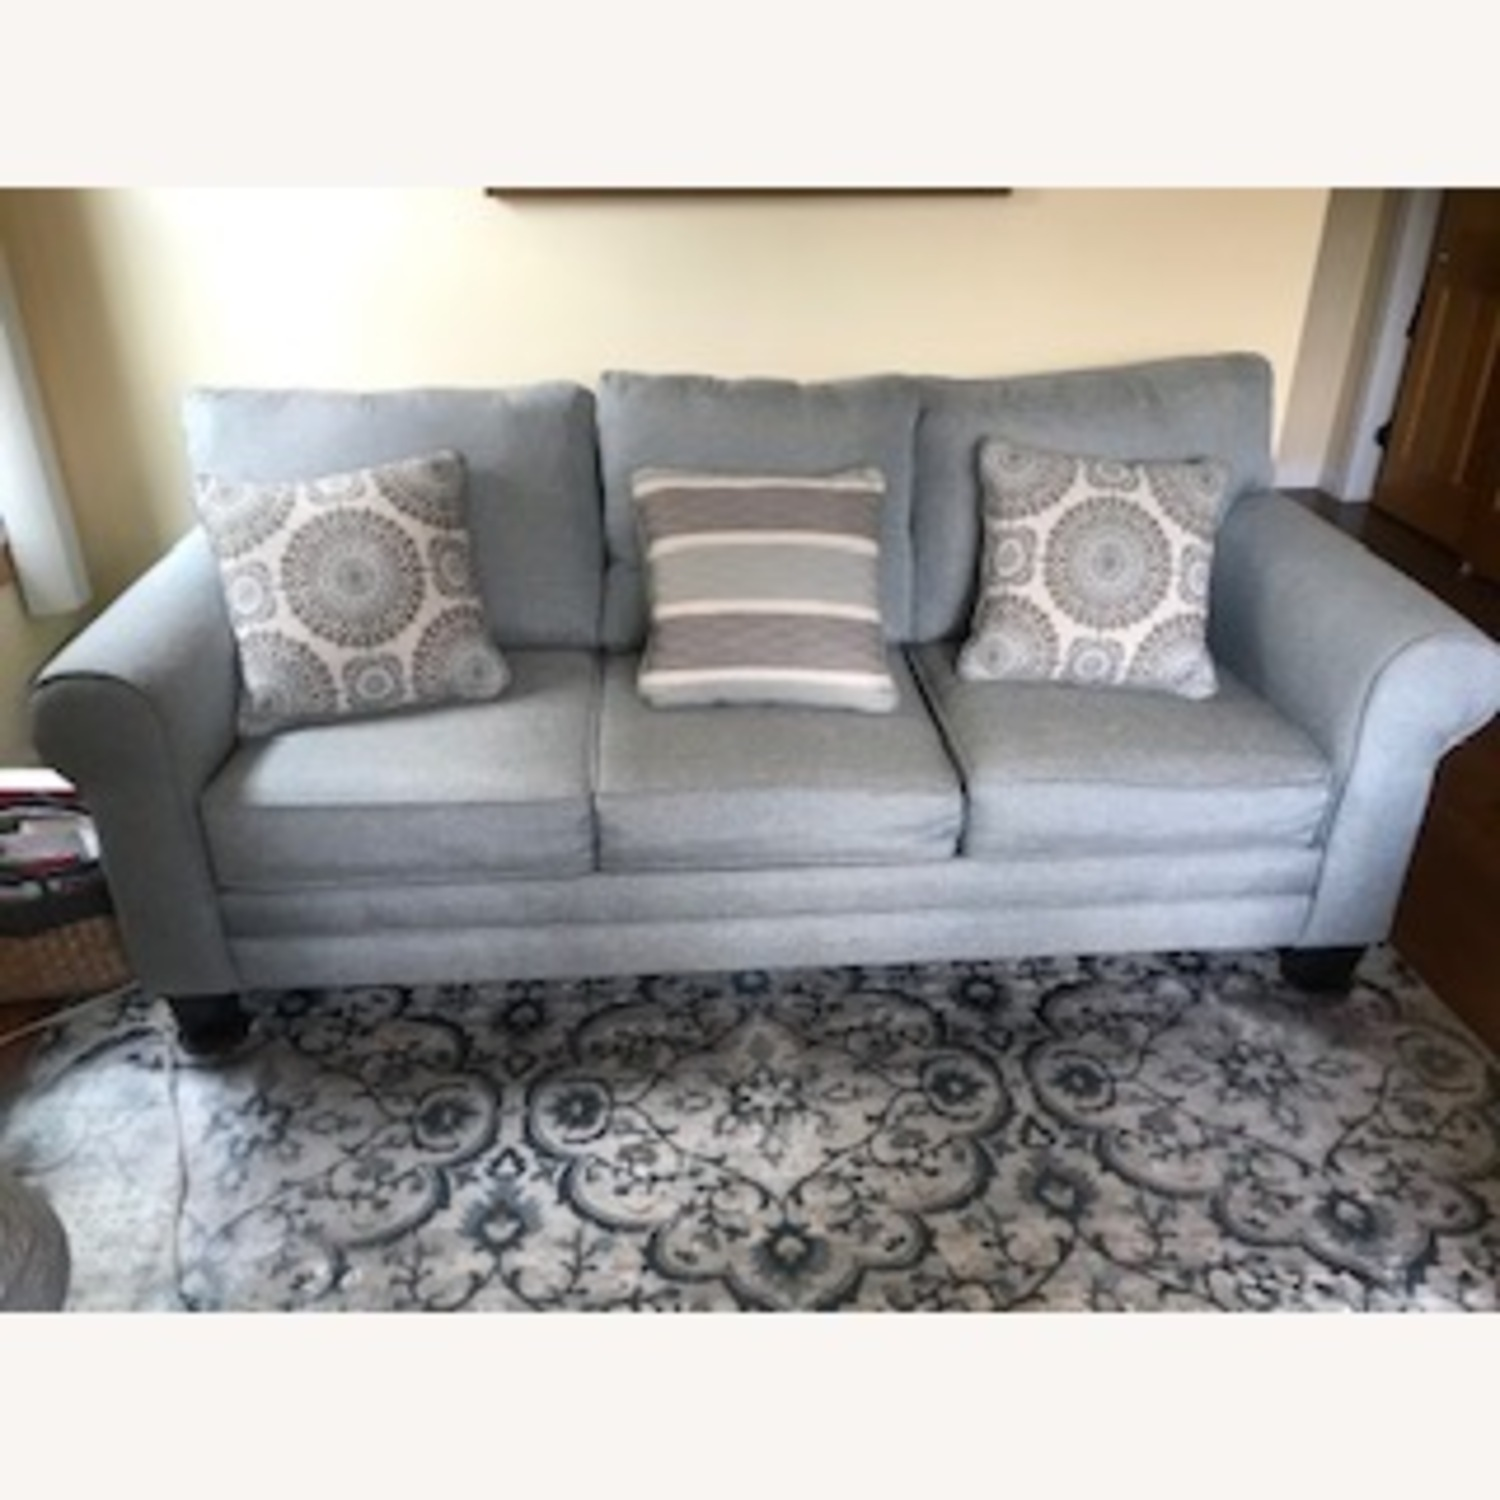 Wayfair Sedgley Rolled Armed Sofa with Reversible Cushion - image-4